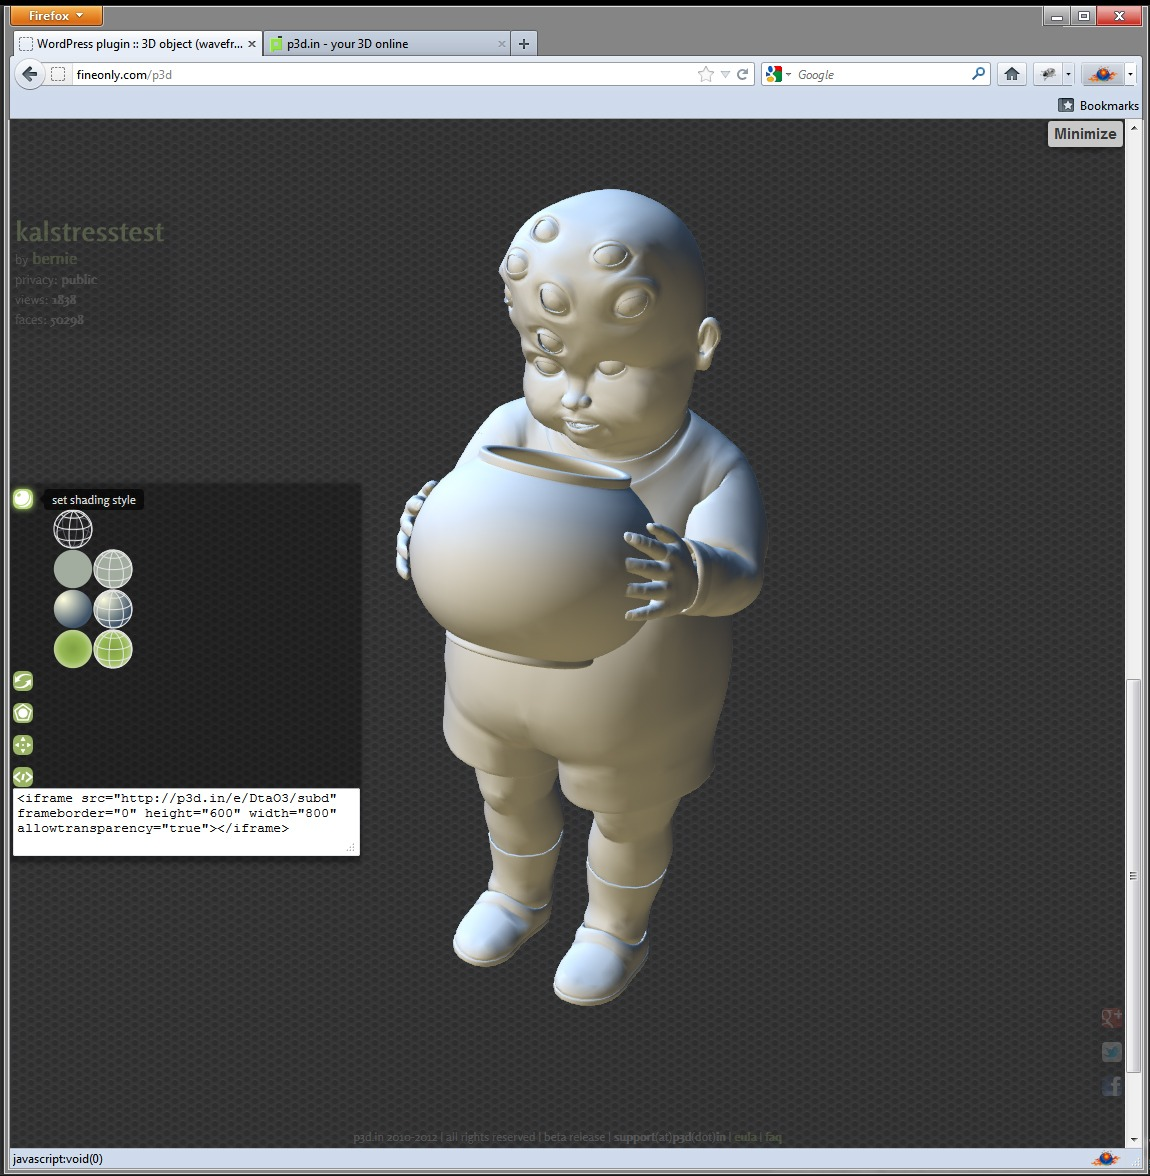 p3d wordpress plugin puts this eight eyed baby in 3d on